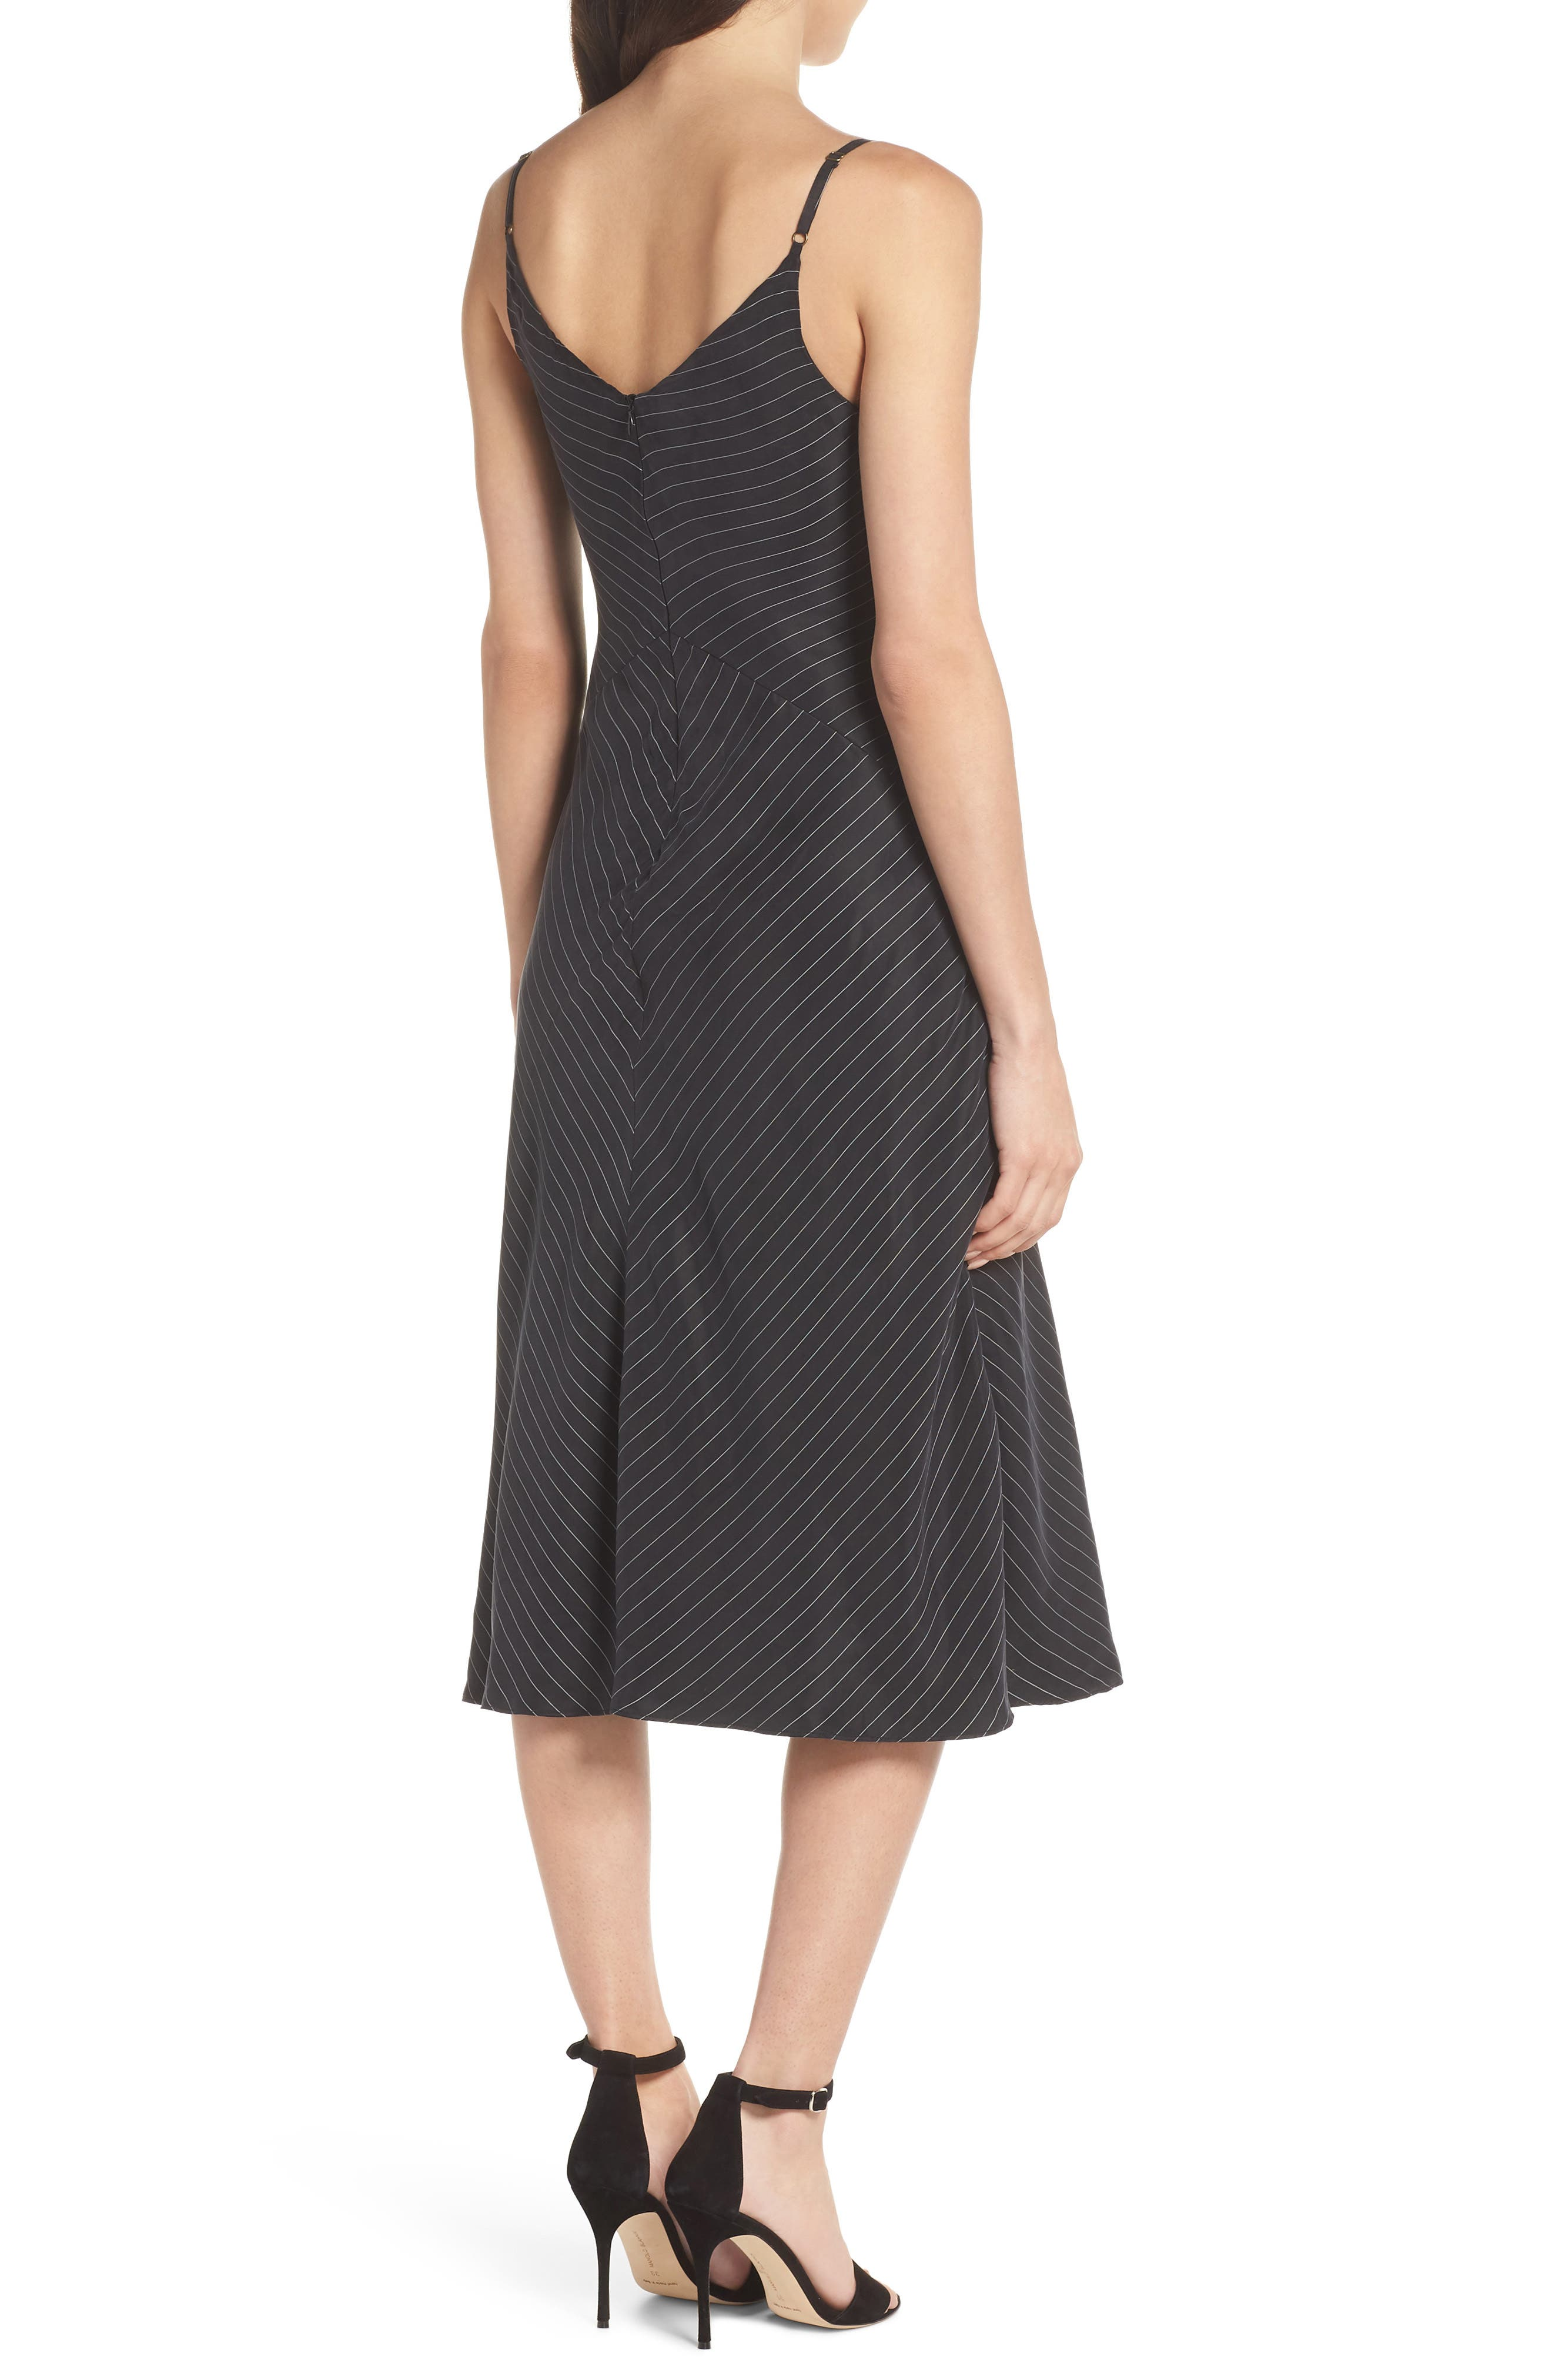 Bay Area Sleeveless Pinstripe Midi Dress,                             Alternate thumbnail 2, color,                             001